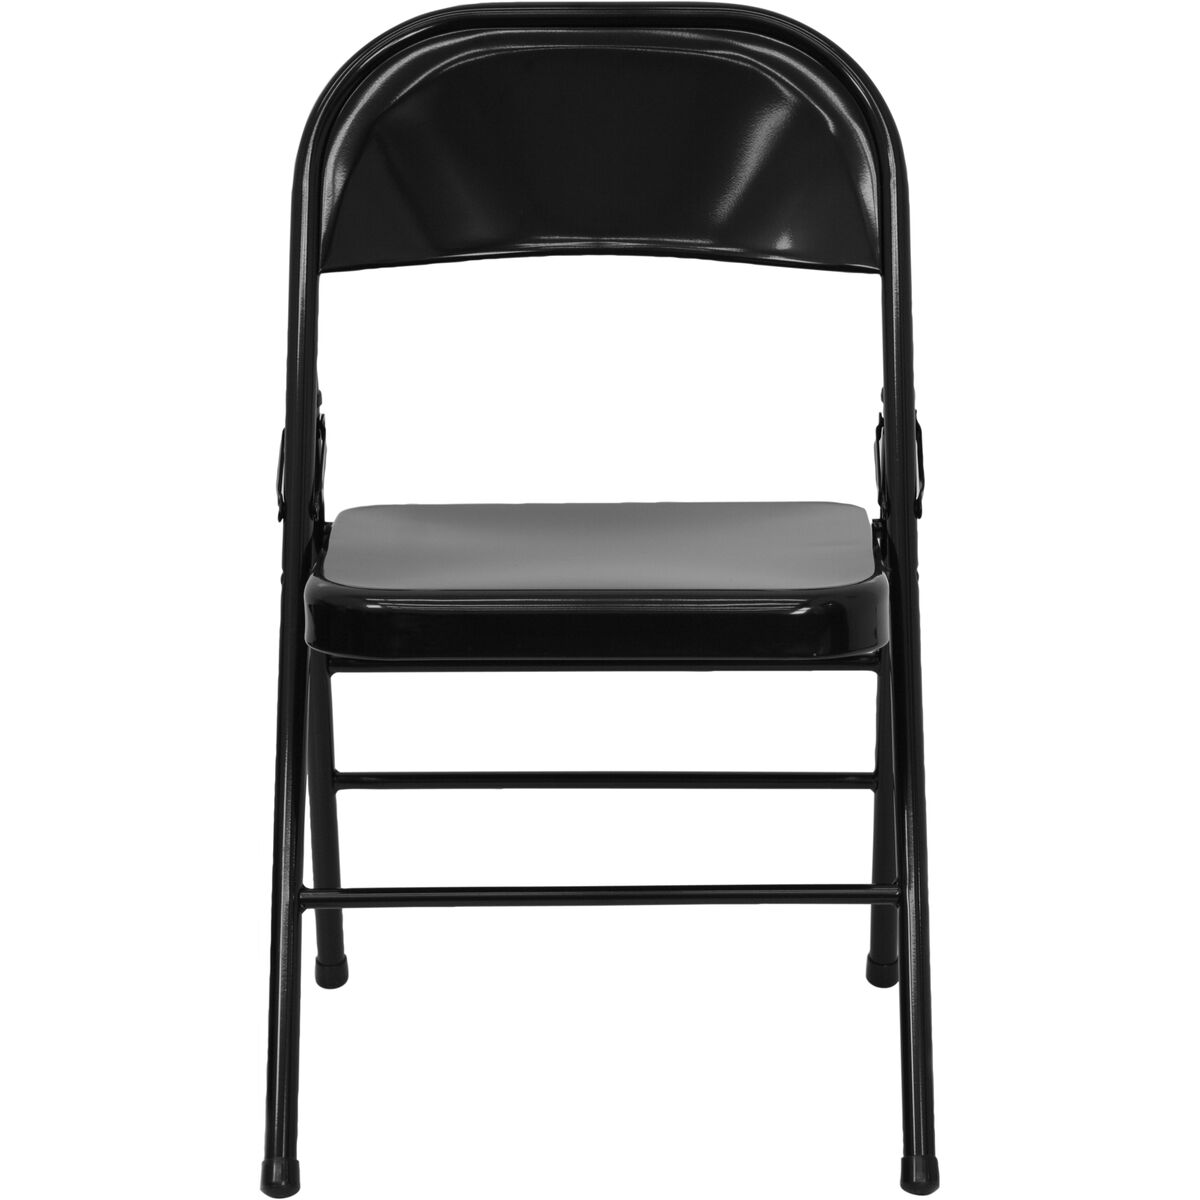 black metal folding chairs. Images. HERCULES Series Triple Braced \u0026 Double-Hinged Black Metal Folding Chair Chairs L